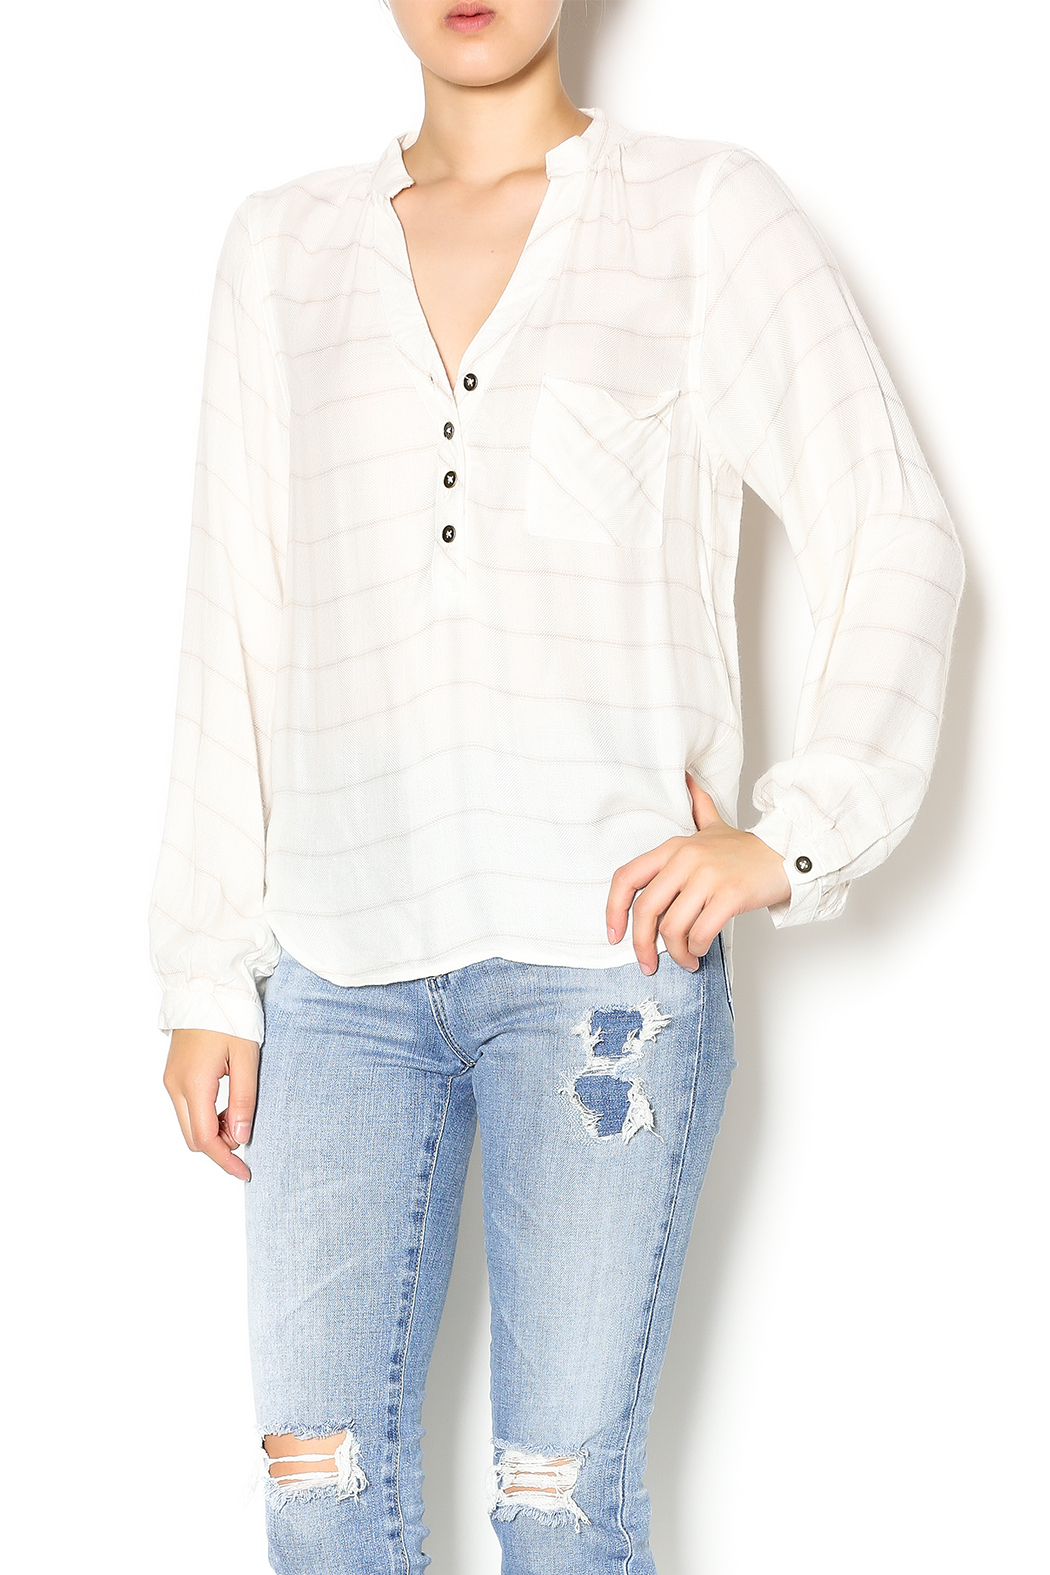 Off-White Striped Top with Tan Pocket